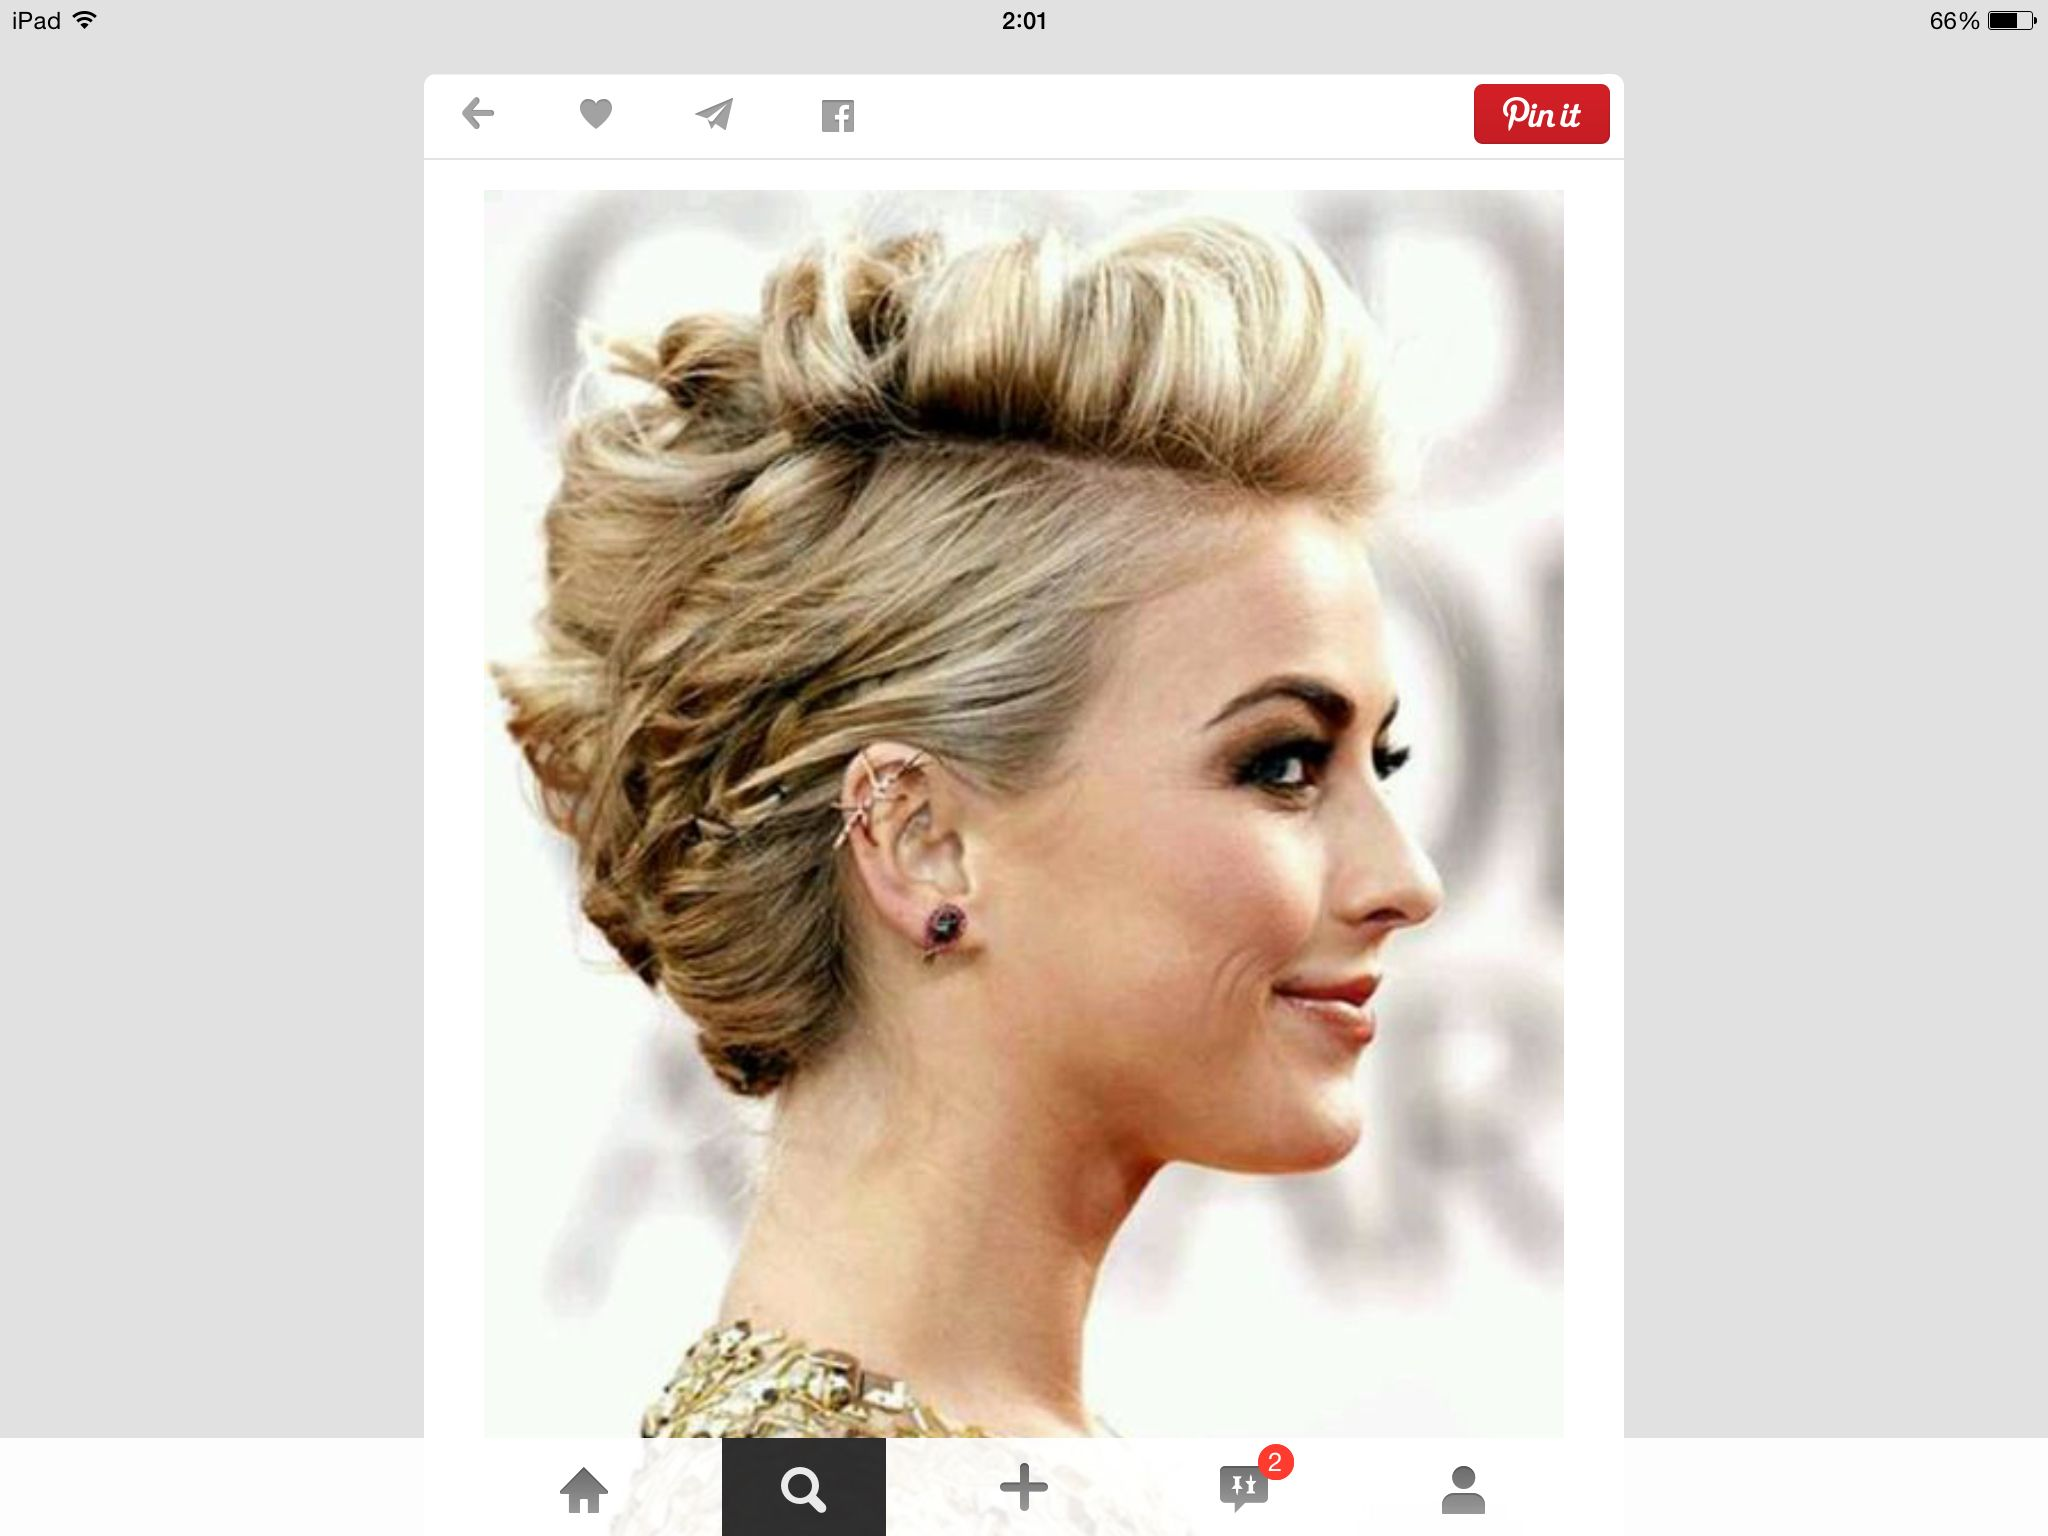 Pin by veronica carrizo on cosas pinterest short hair and hair style